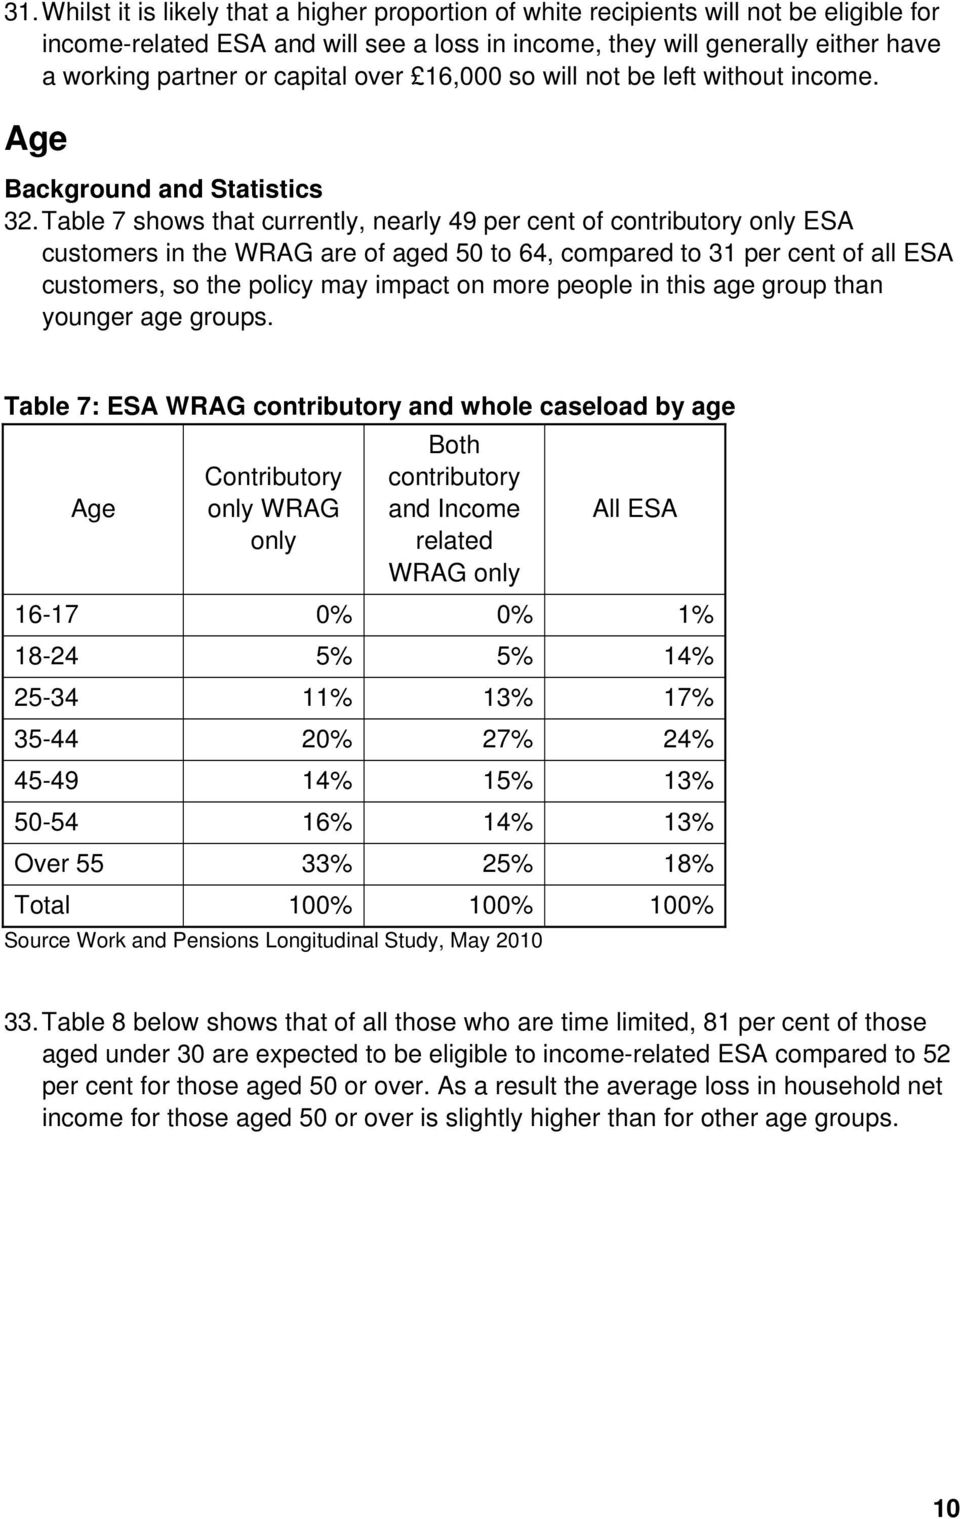 Table 7 shows that currently, nearly 49 per cent of contributory only ESA customers in the WRAG are of aged 50 to 64, compared to 31 per cent of all ESA customers, so the policy may impact on more